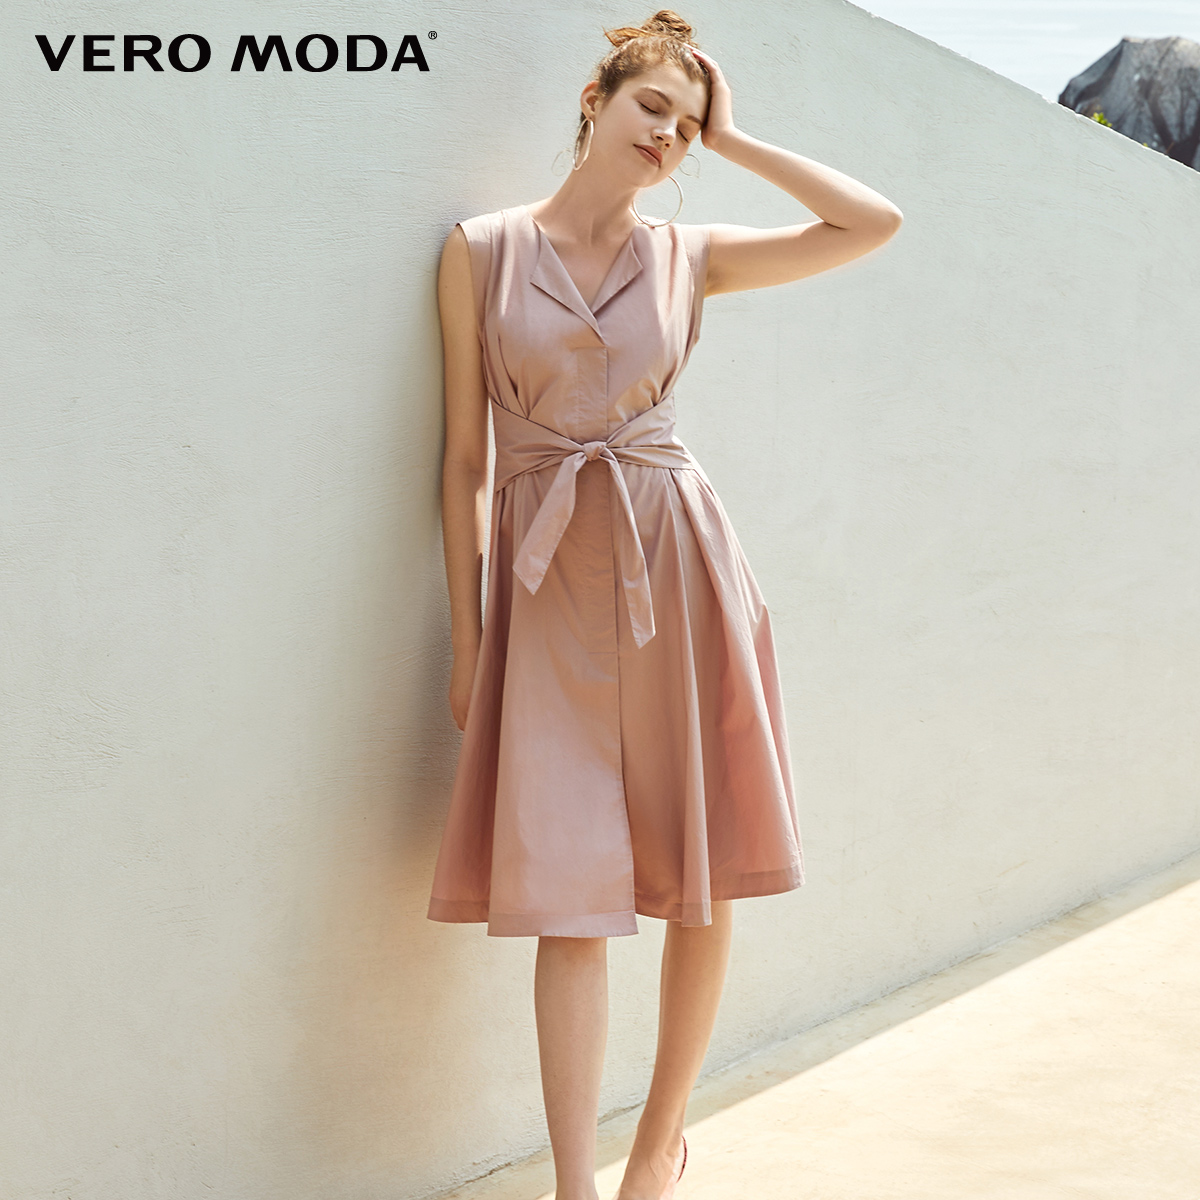 Vero Moda Women's 100% Cotton Lace-up Waist Sleeveless Pure Knee-length Dress | 31927B526